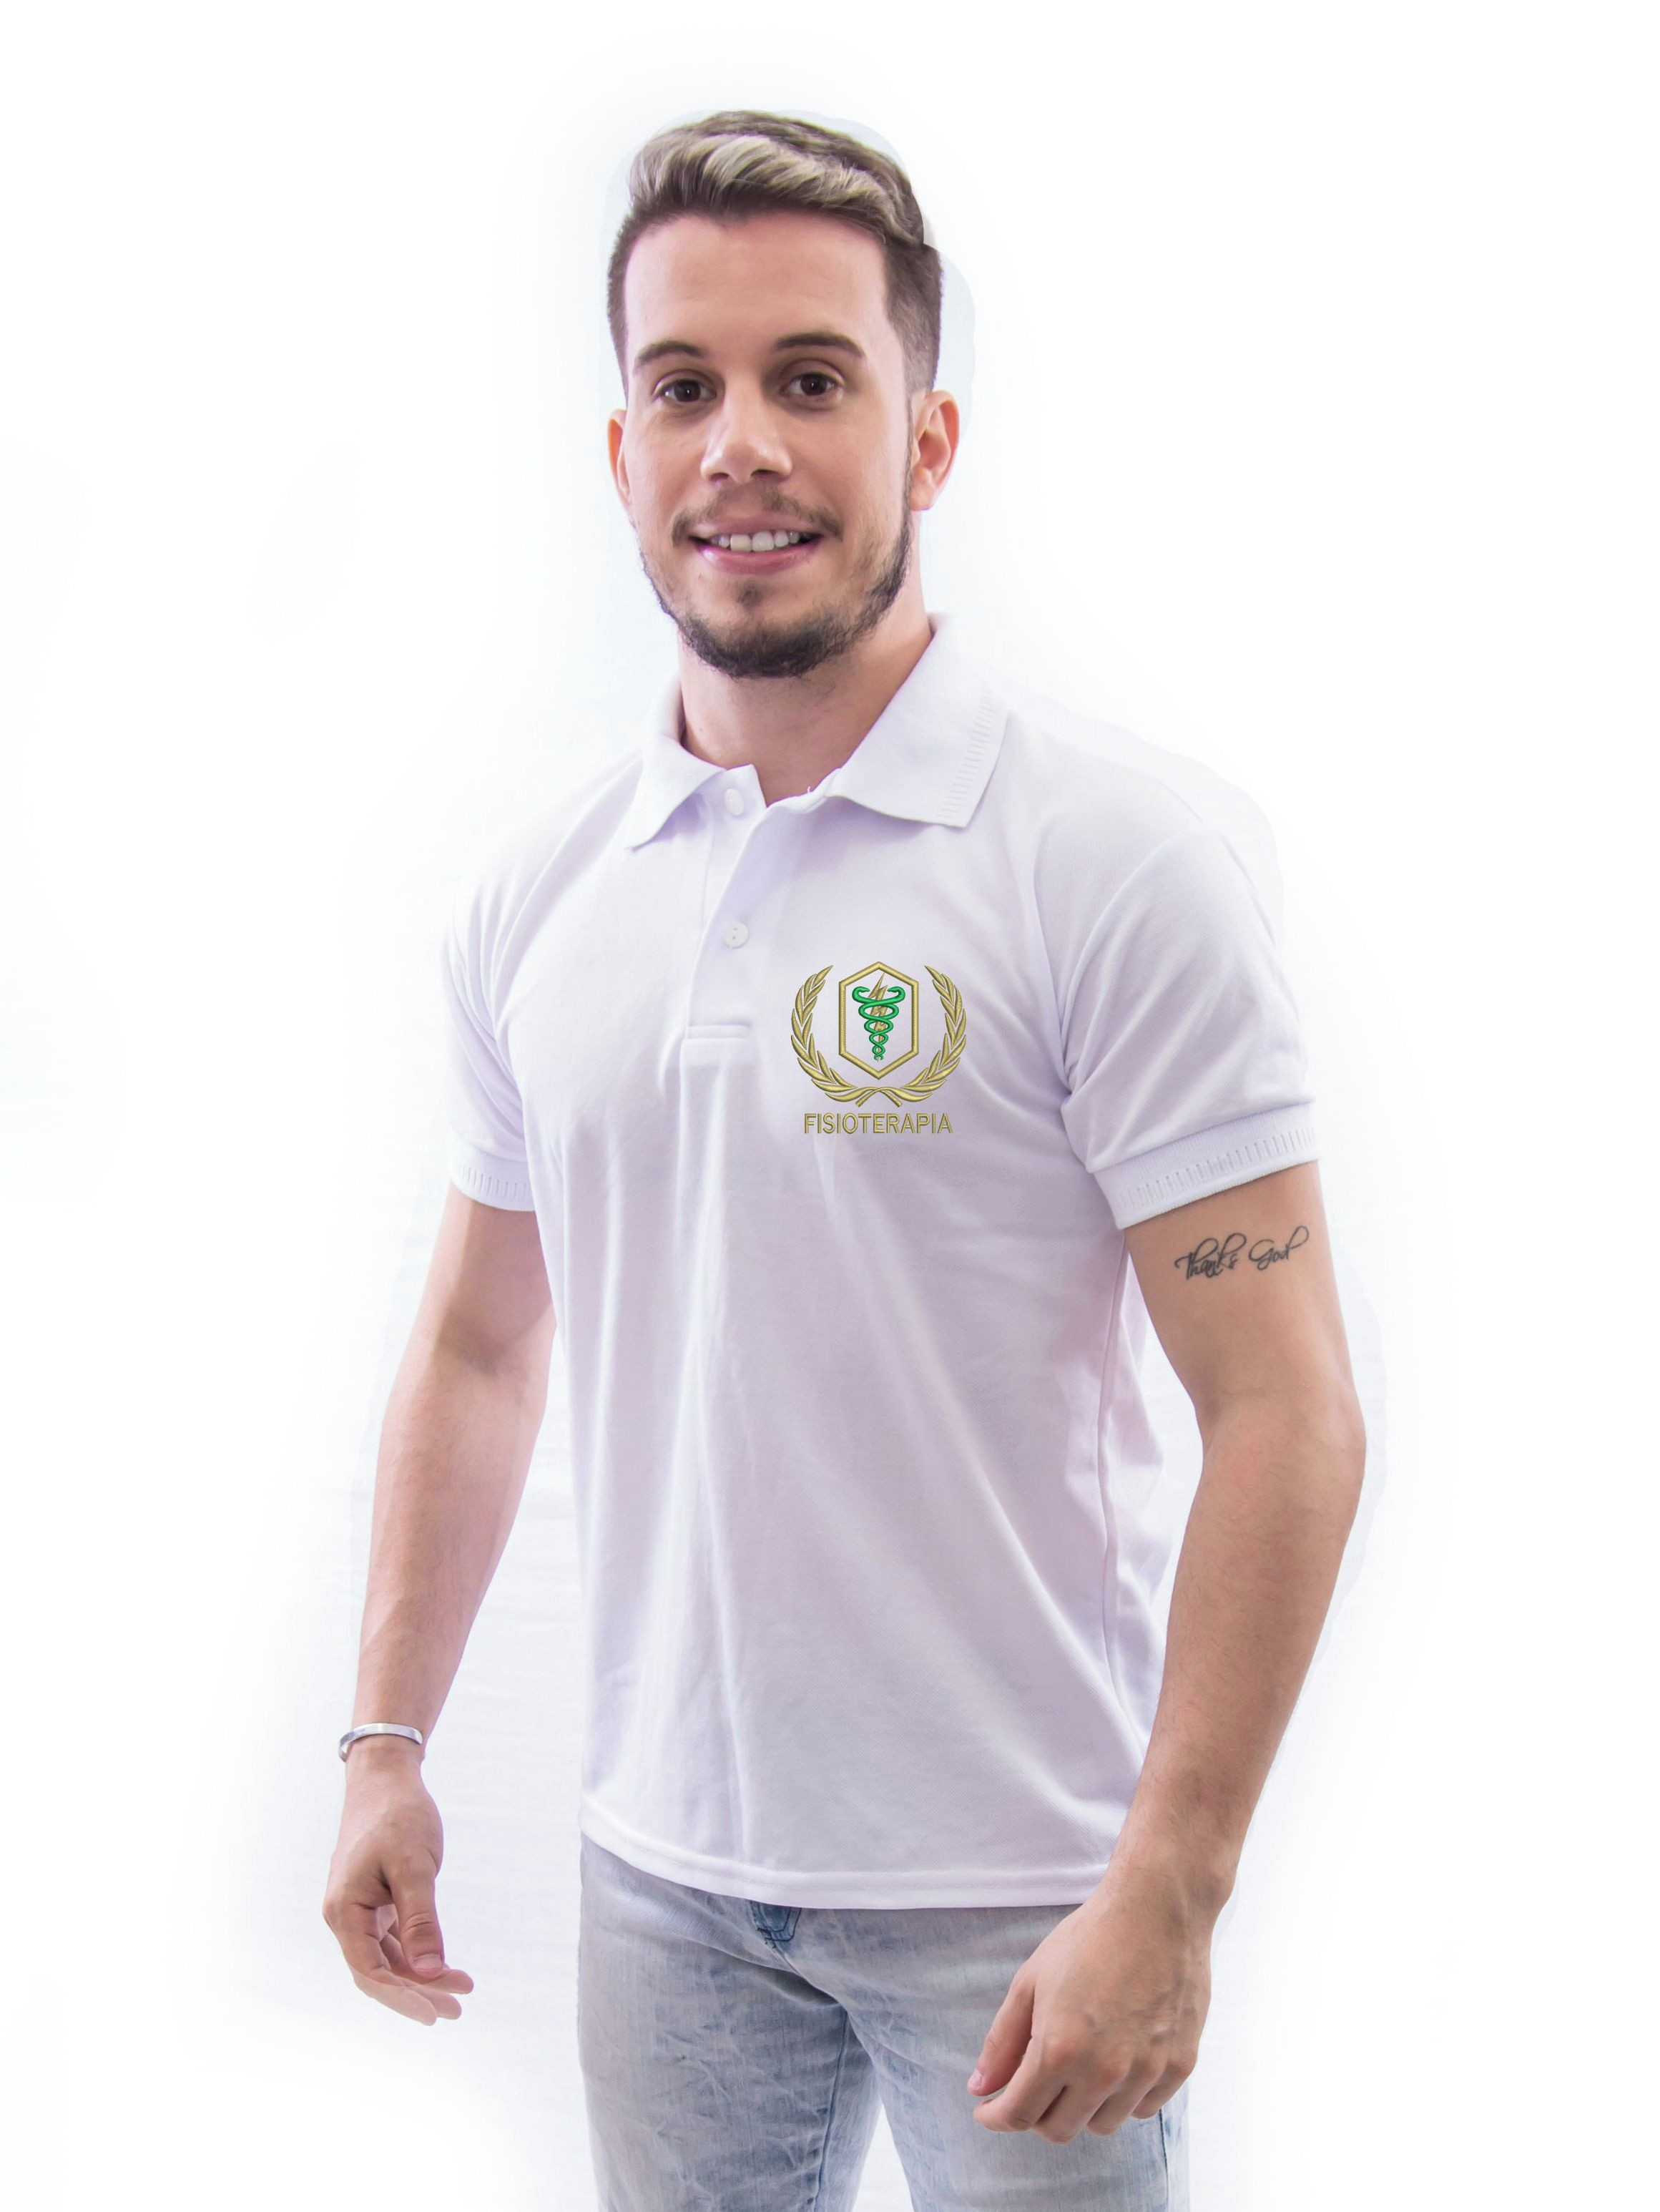 6b24422ee3 CAMISA POLO UNIVERSITÁRIA BORDADA FISIOTERAPIA no Elo7